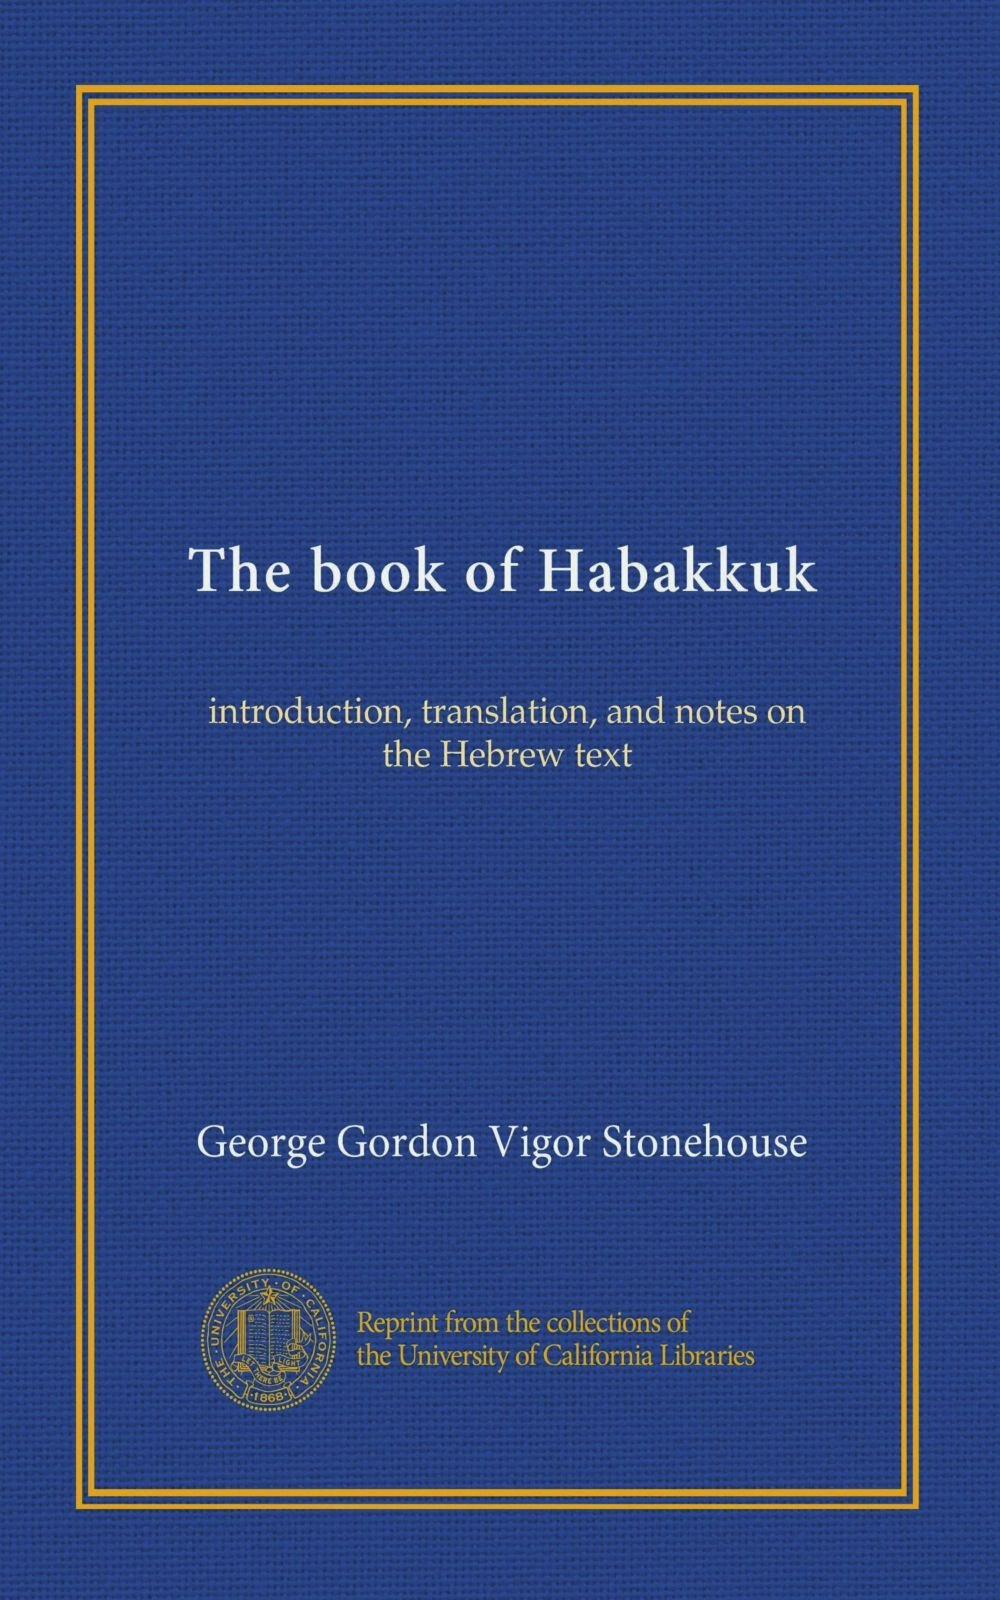 Download The book of Habakkuk: introduction, translation, and notes on the Hebrew text pdf